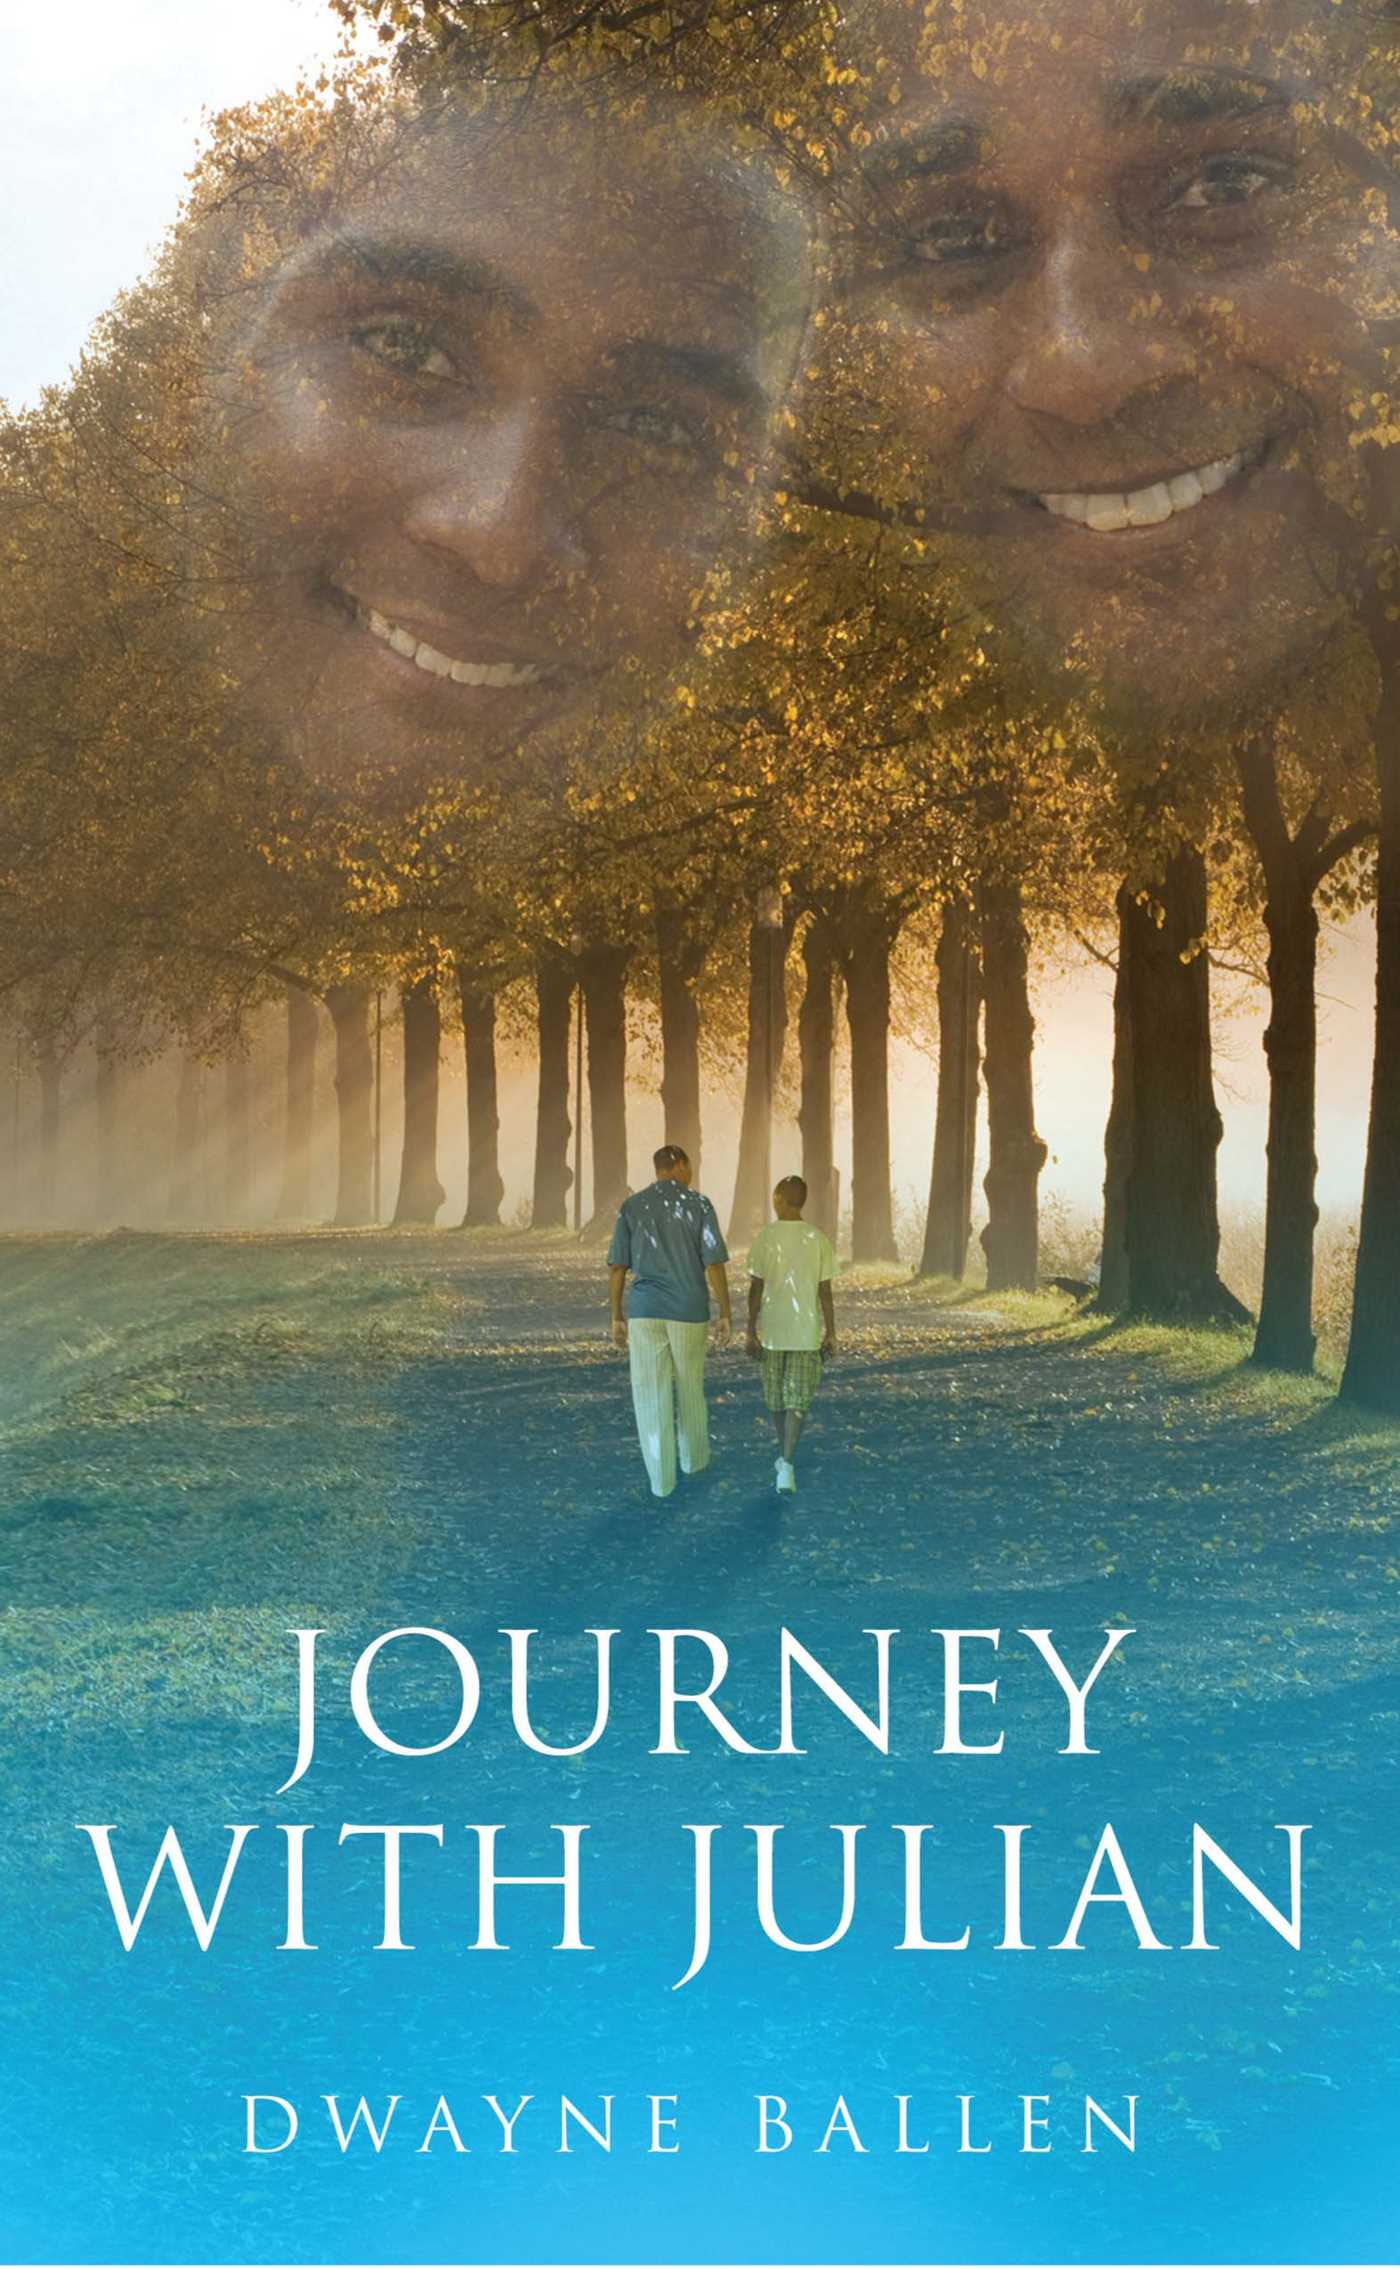 Journey with julian 9781593094232 hr